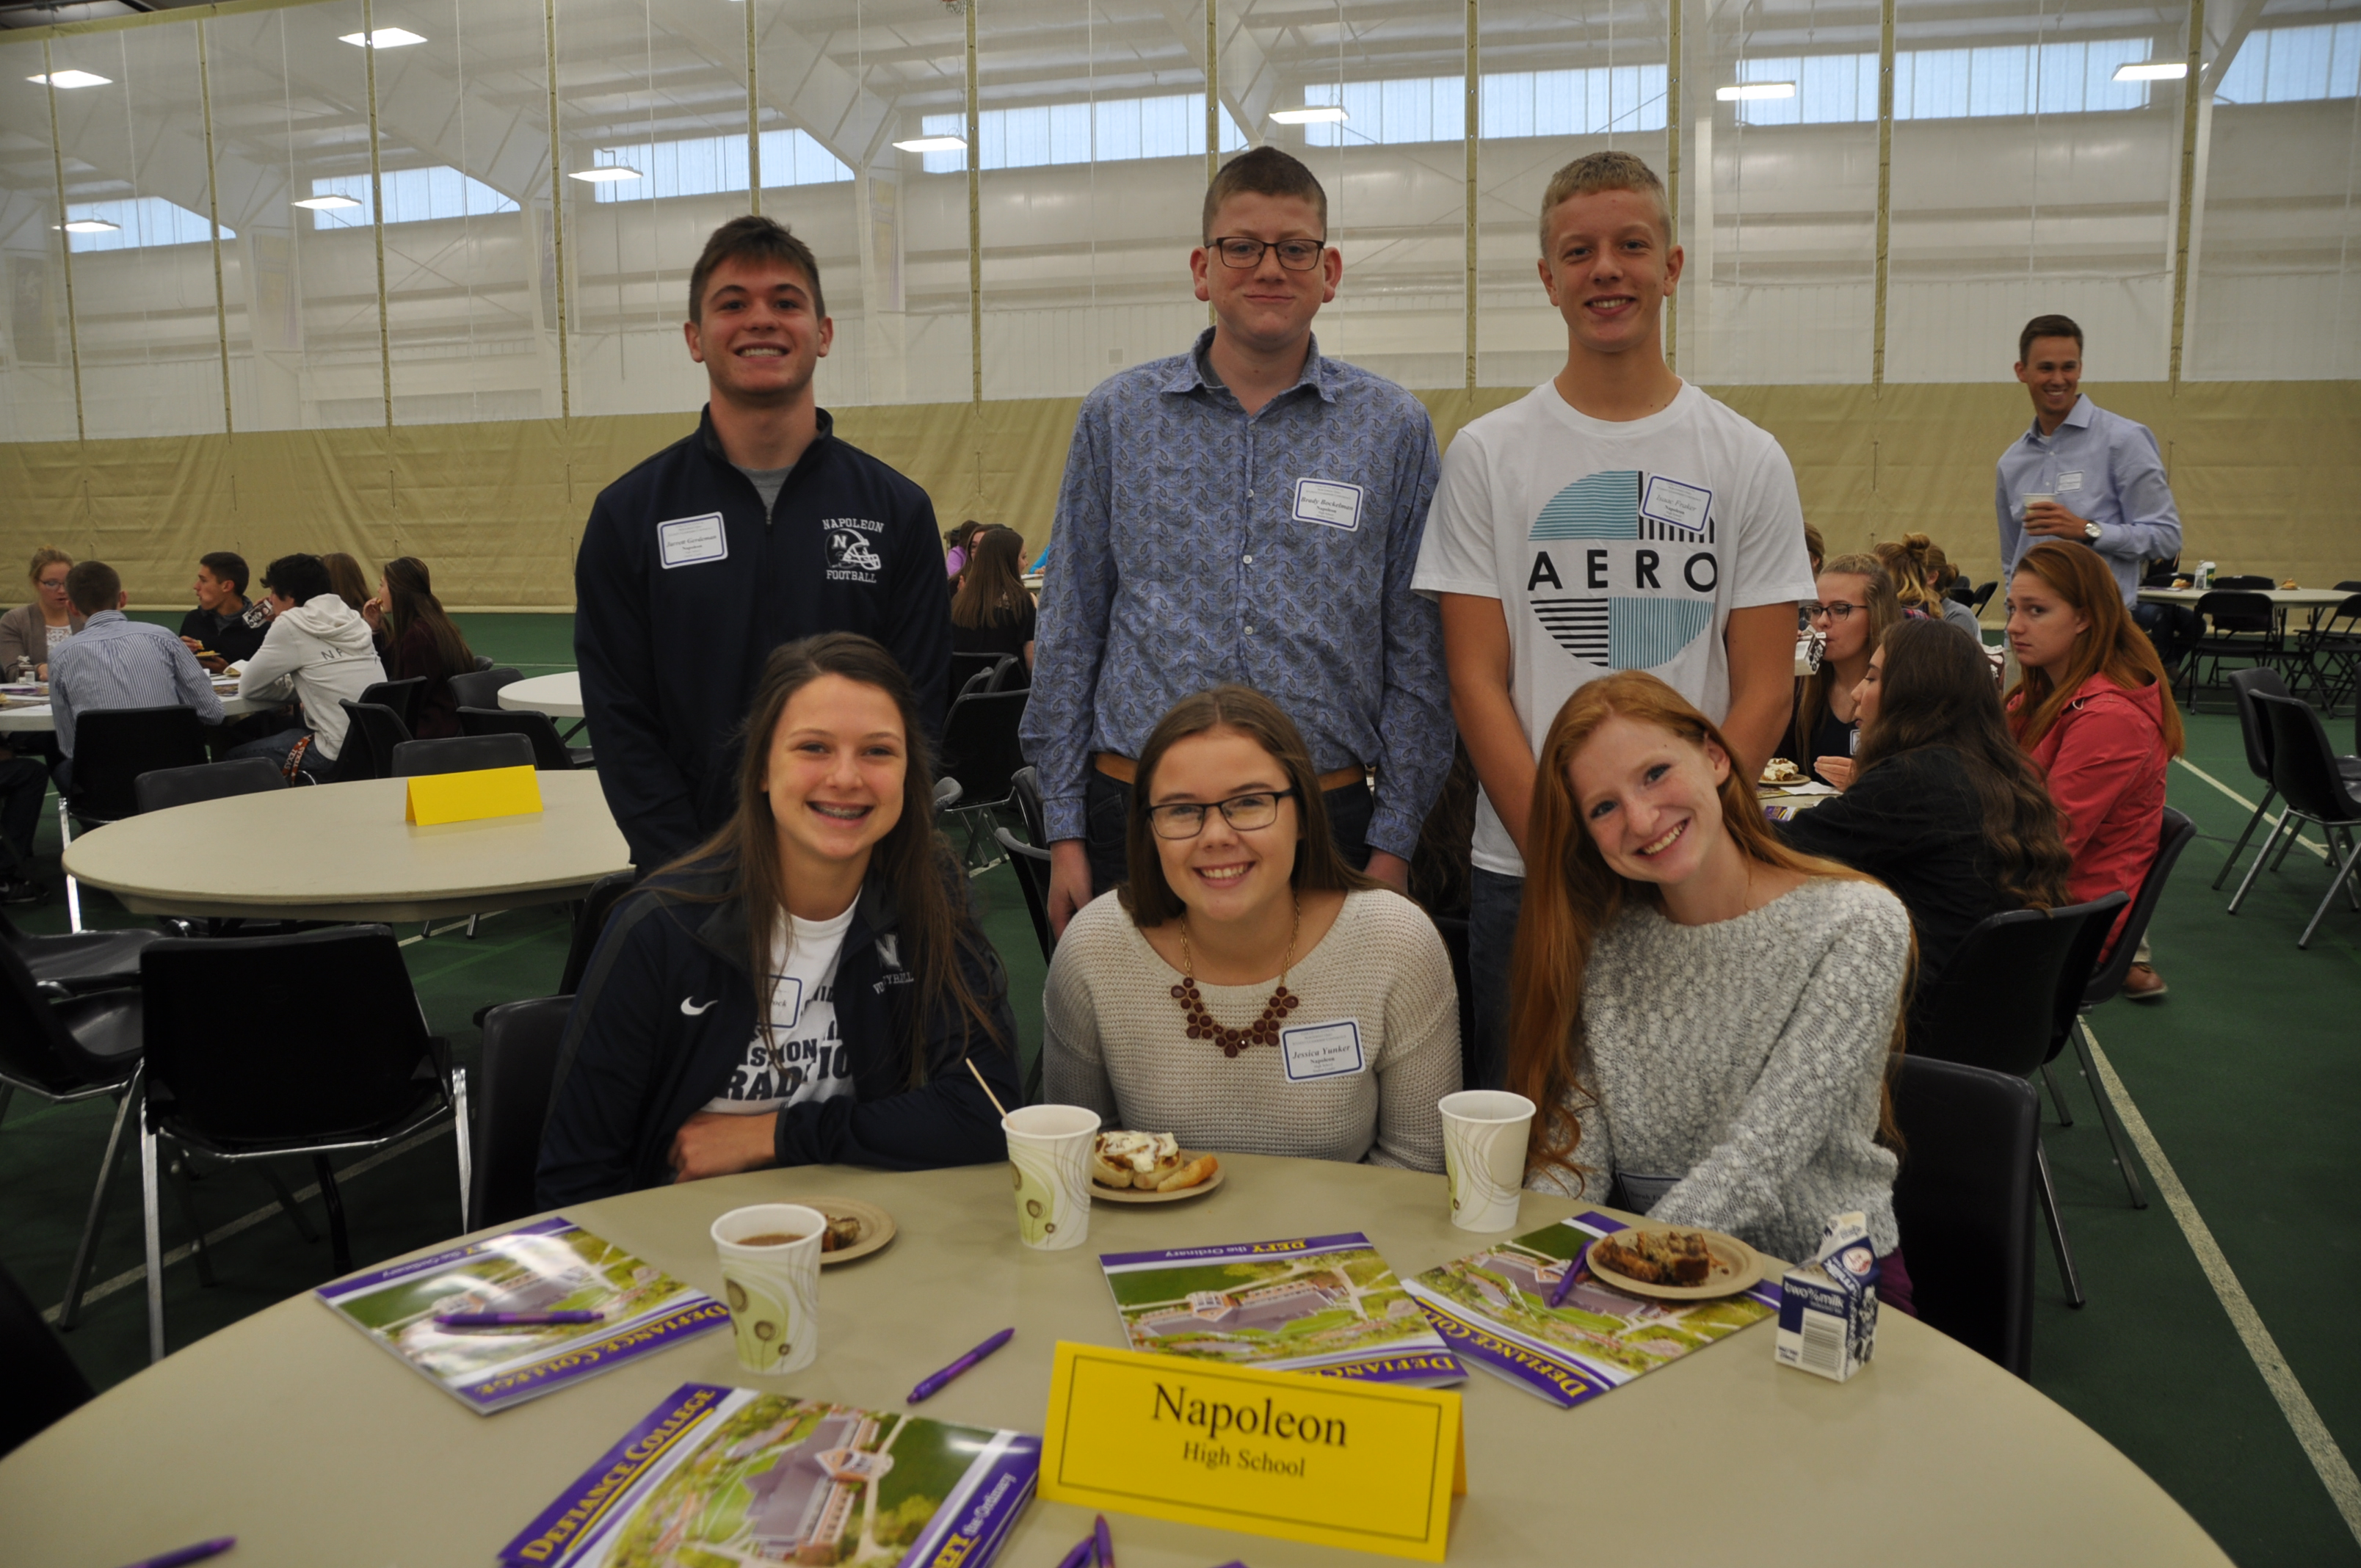 Northwest Ohio Student Leadership Conference